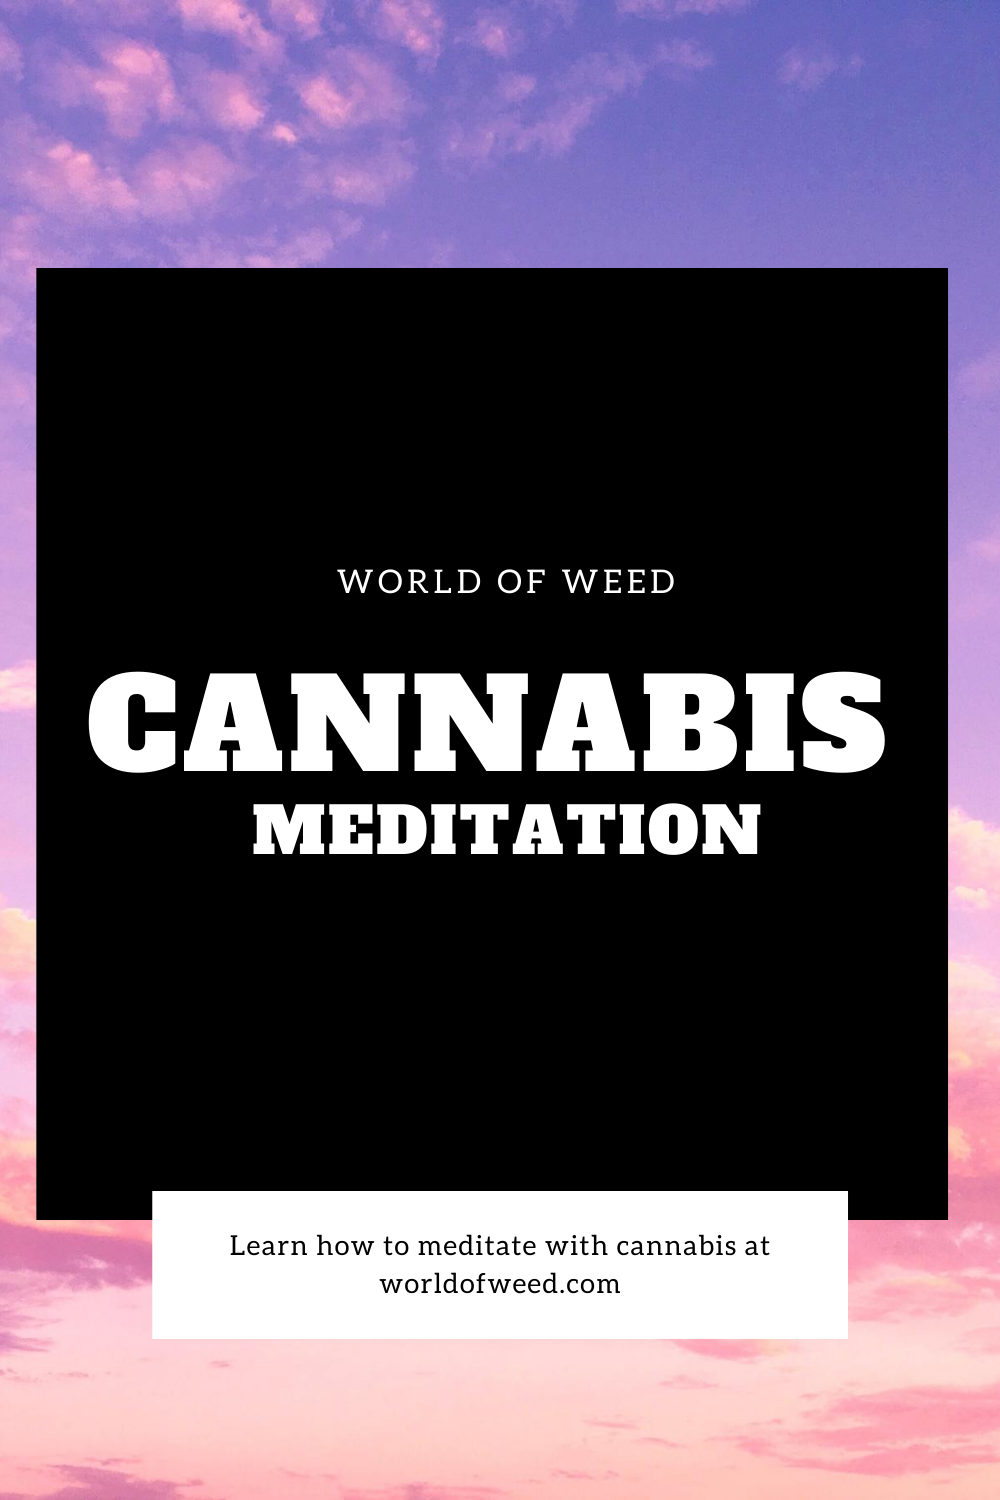 How to Meditate With Cannabis